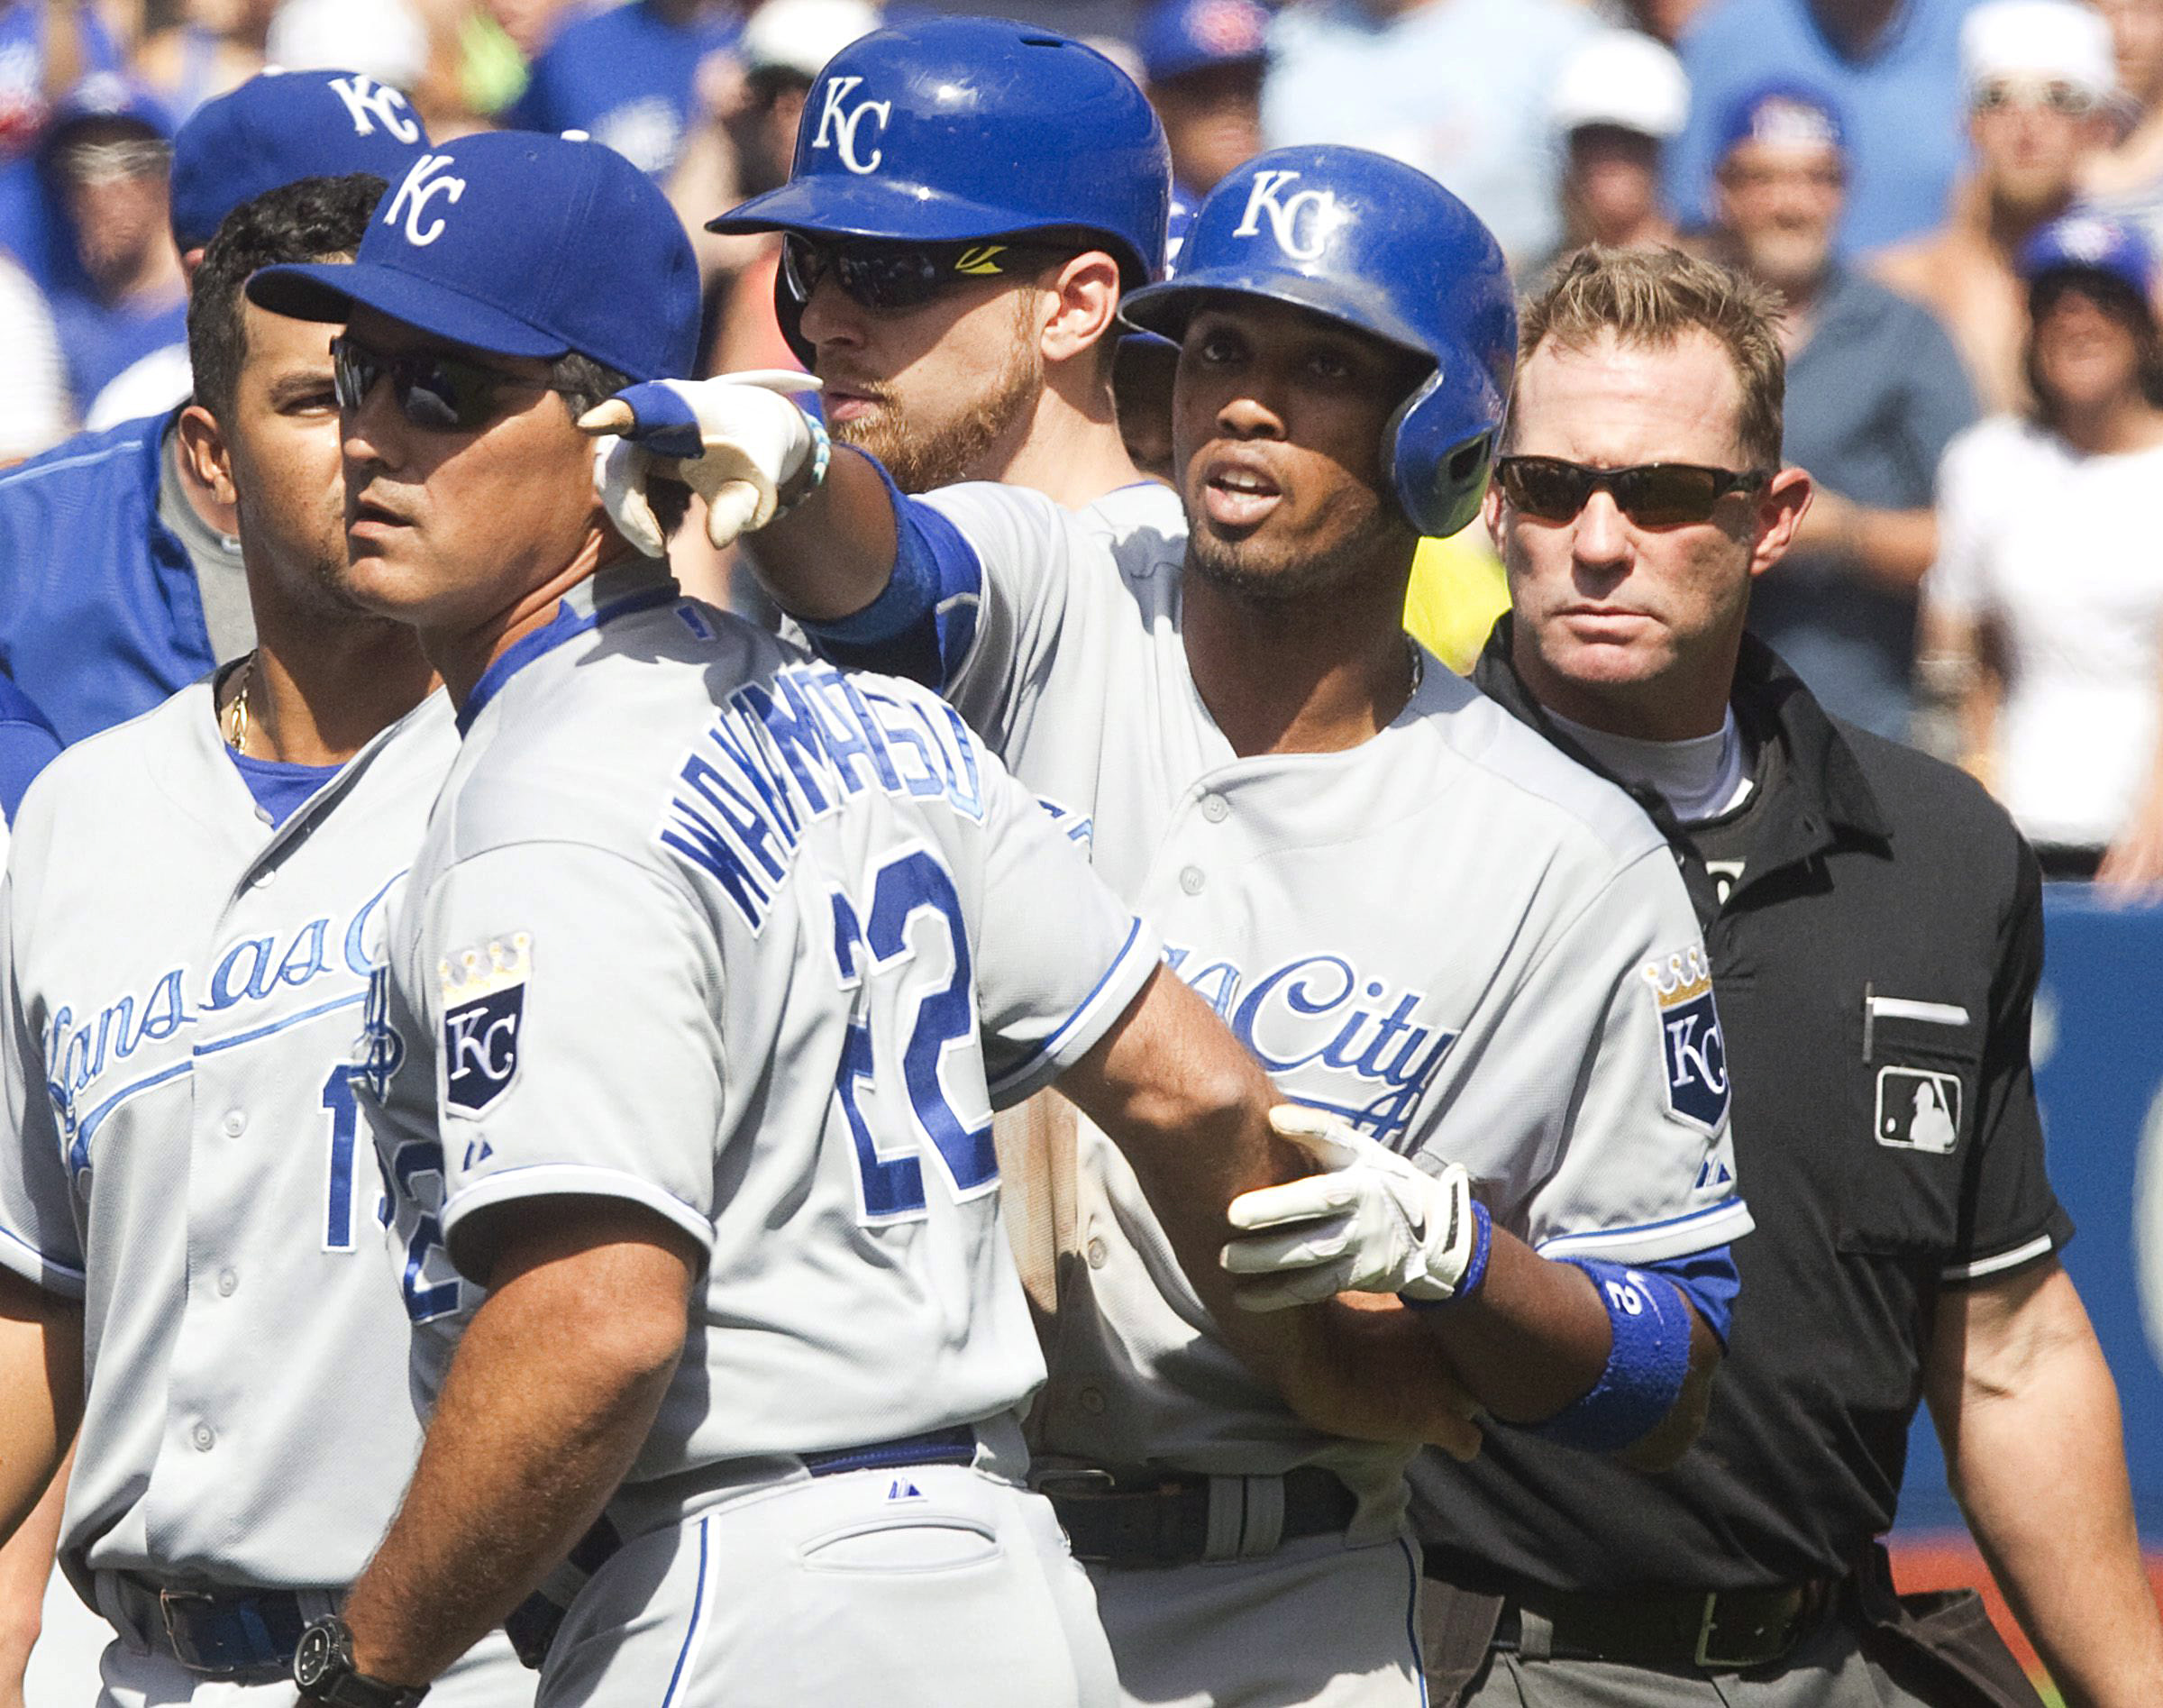 Kansas City Royals Alcides Escobar is held back by coach Don Wakamatsu (22) as he gestures at Toronto Blue Jays pitcher Aaron Sanchez who was ejected from their baseball game in Toronto for hitting Escobar on Sunday Aug. 2, 2015. Home plate umpire Jim Wol